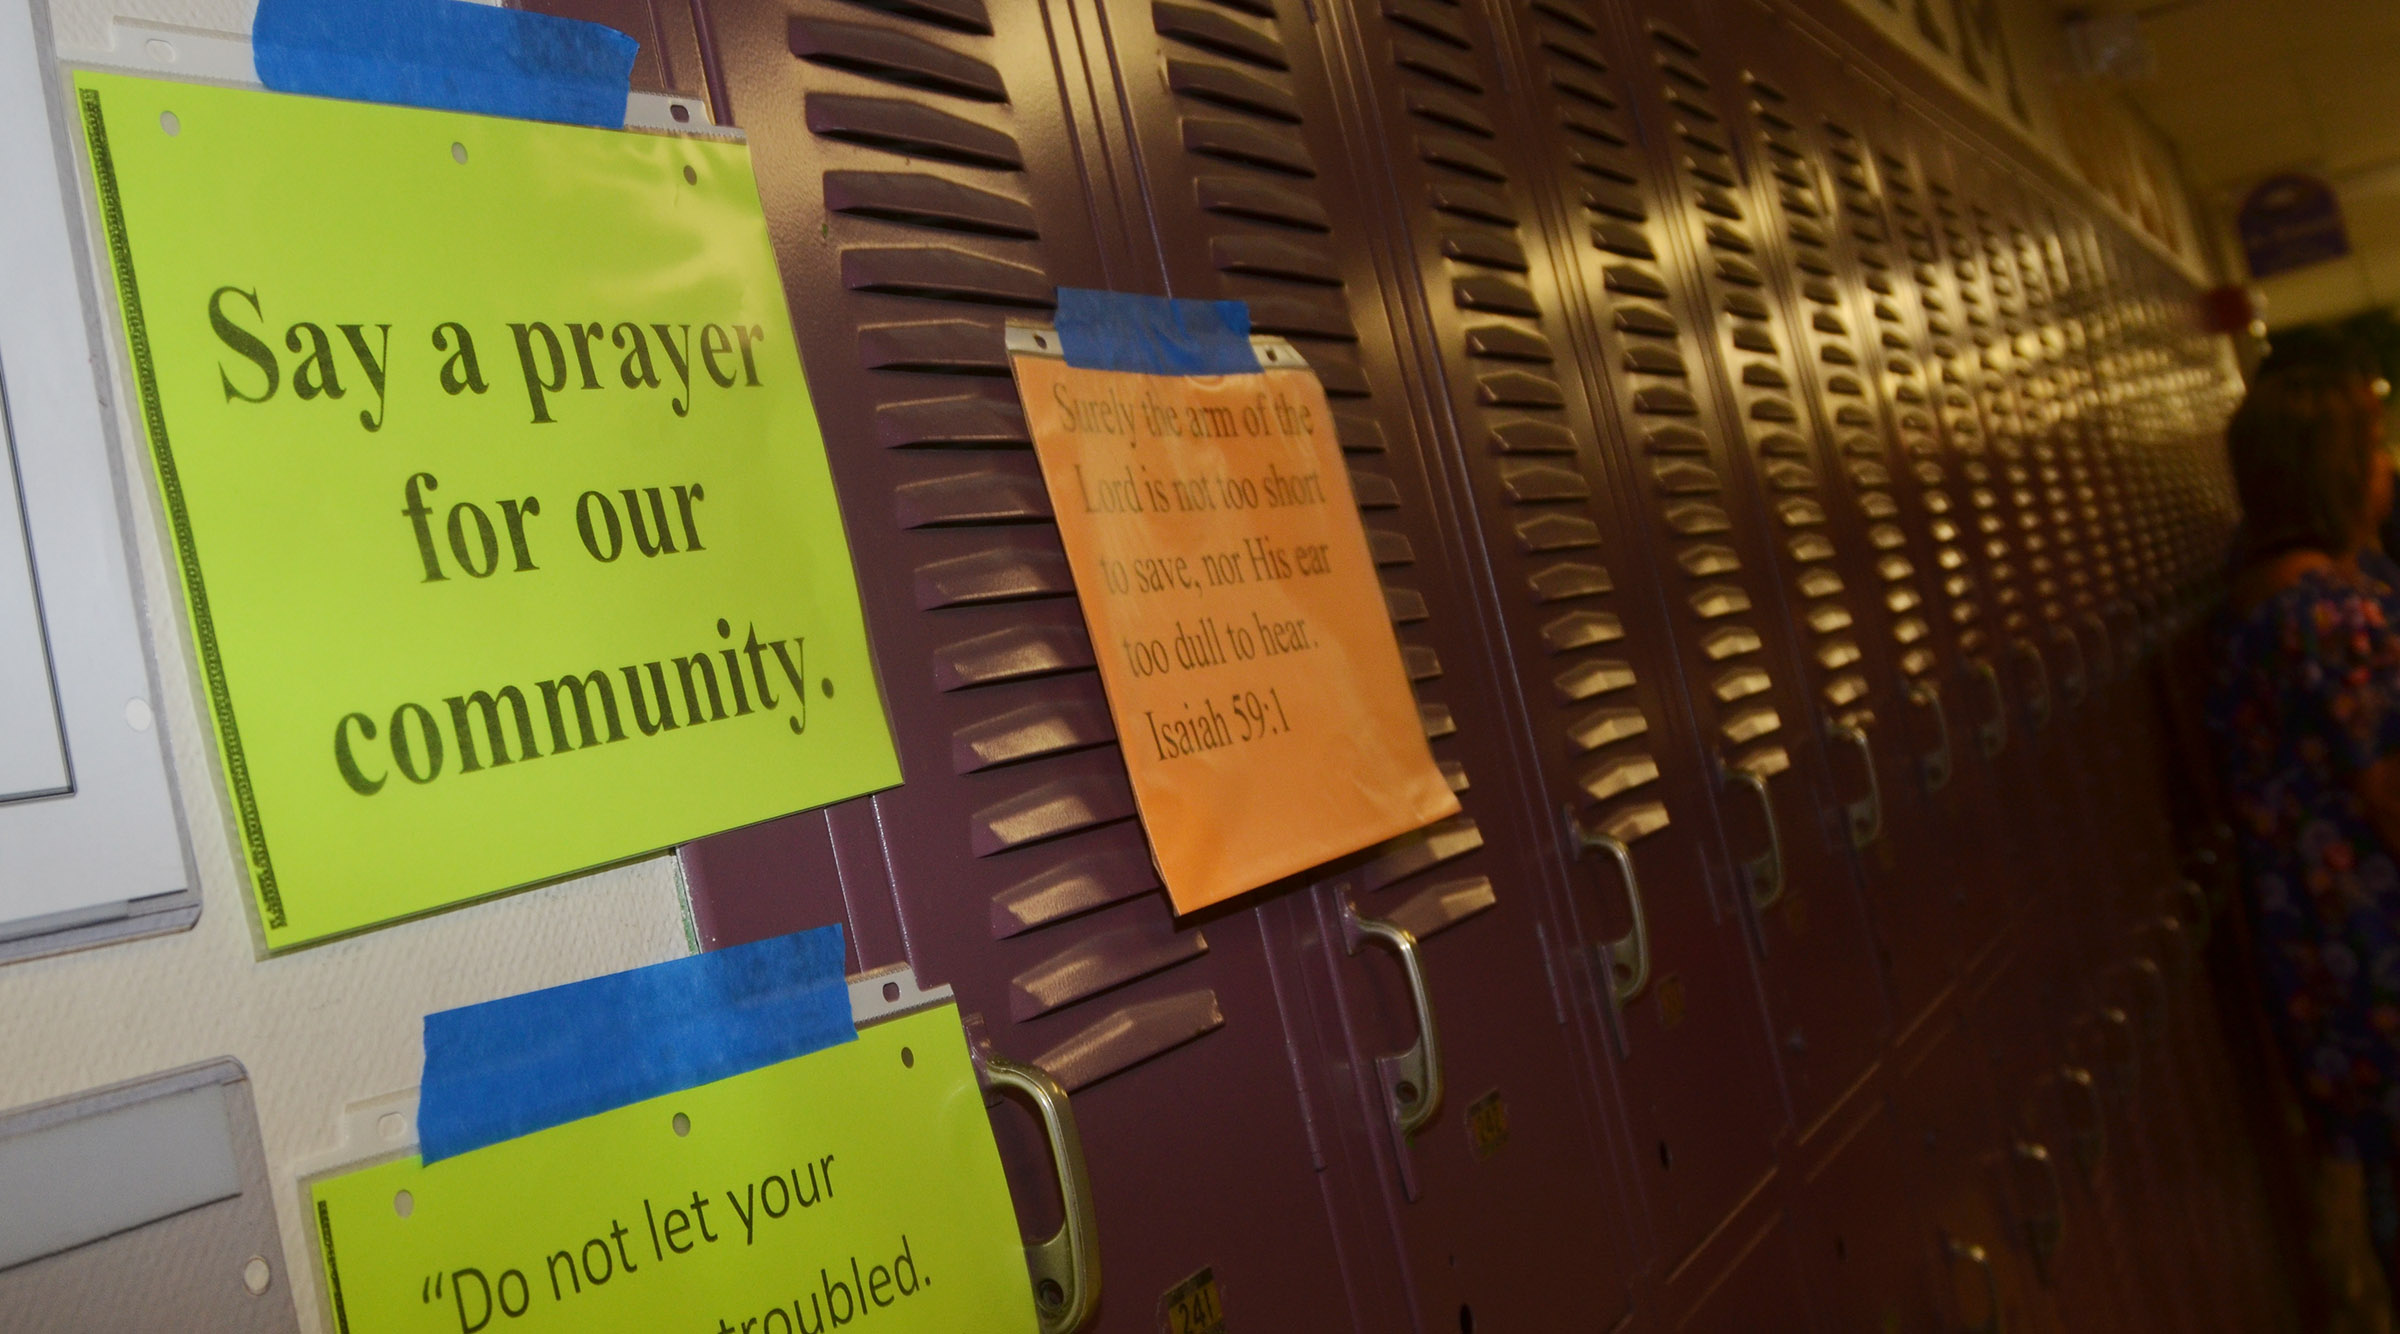 Signs were posted around the CIS campuses encouraging prayer for teachers, students, staff members and others.